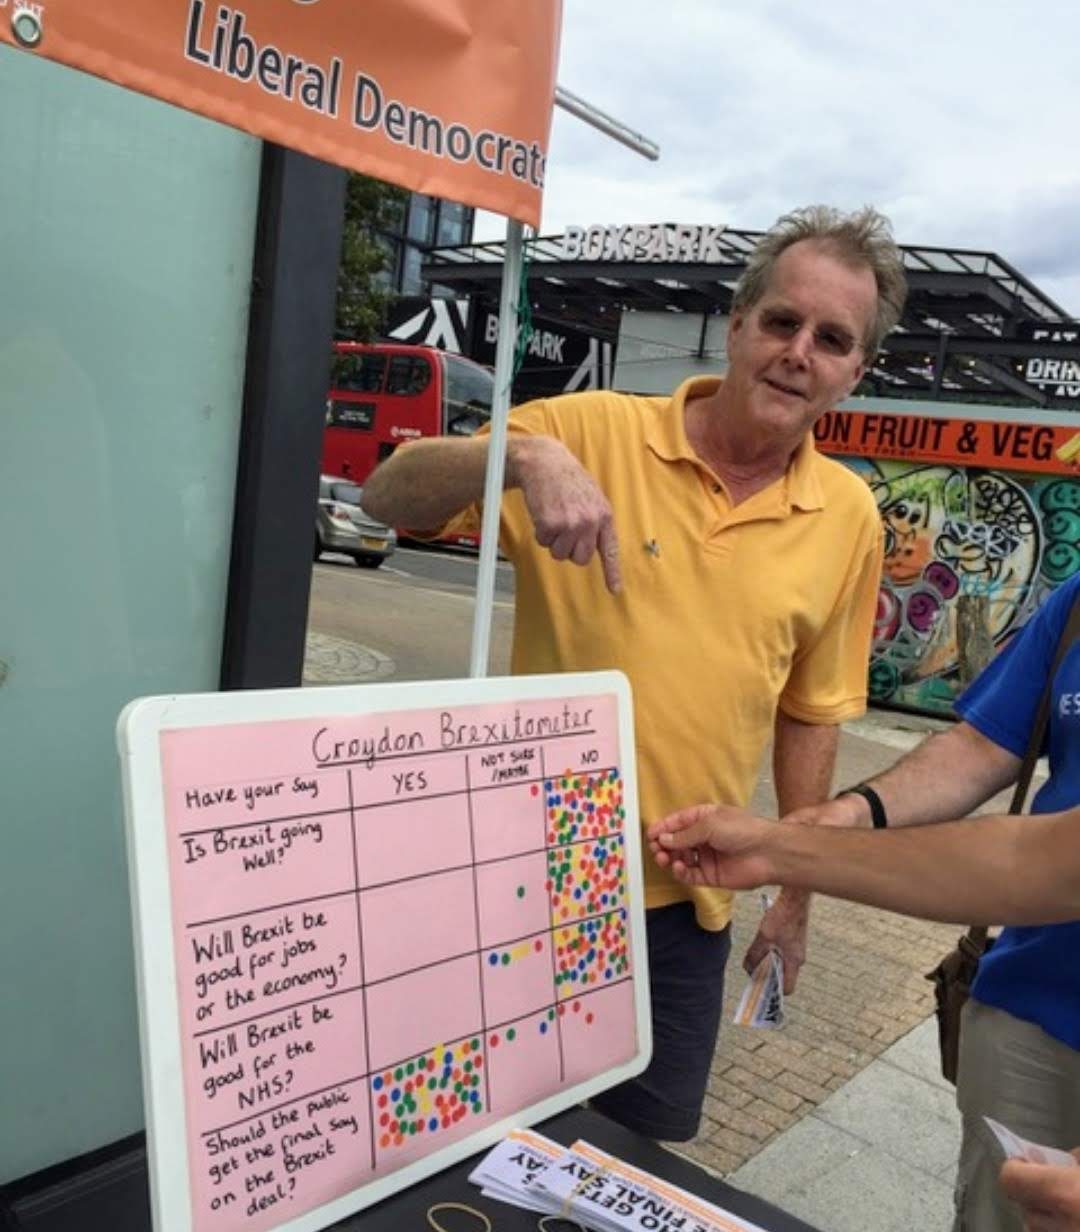 Croydon residents getting behind campaign to rethink Brexit